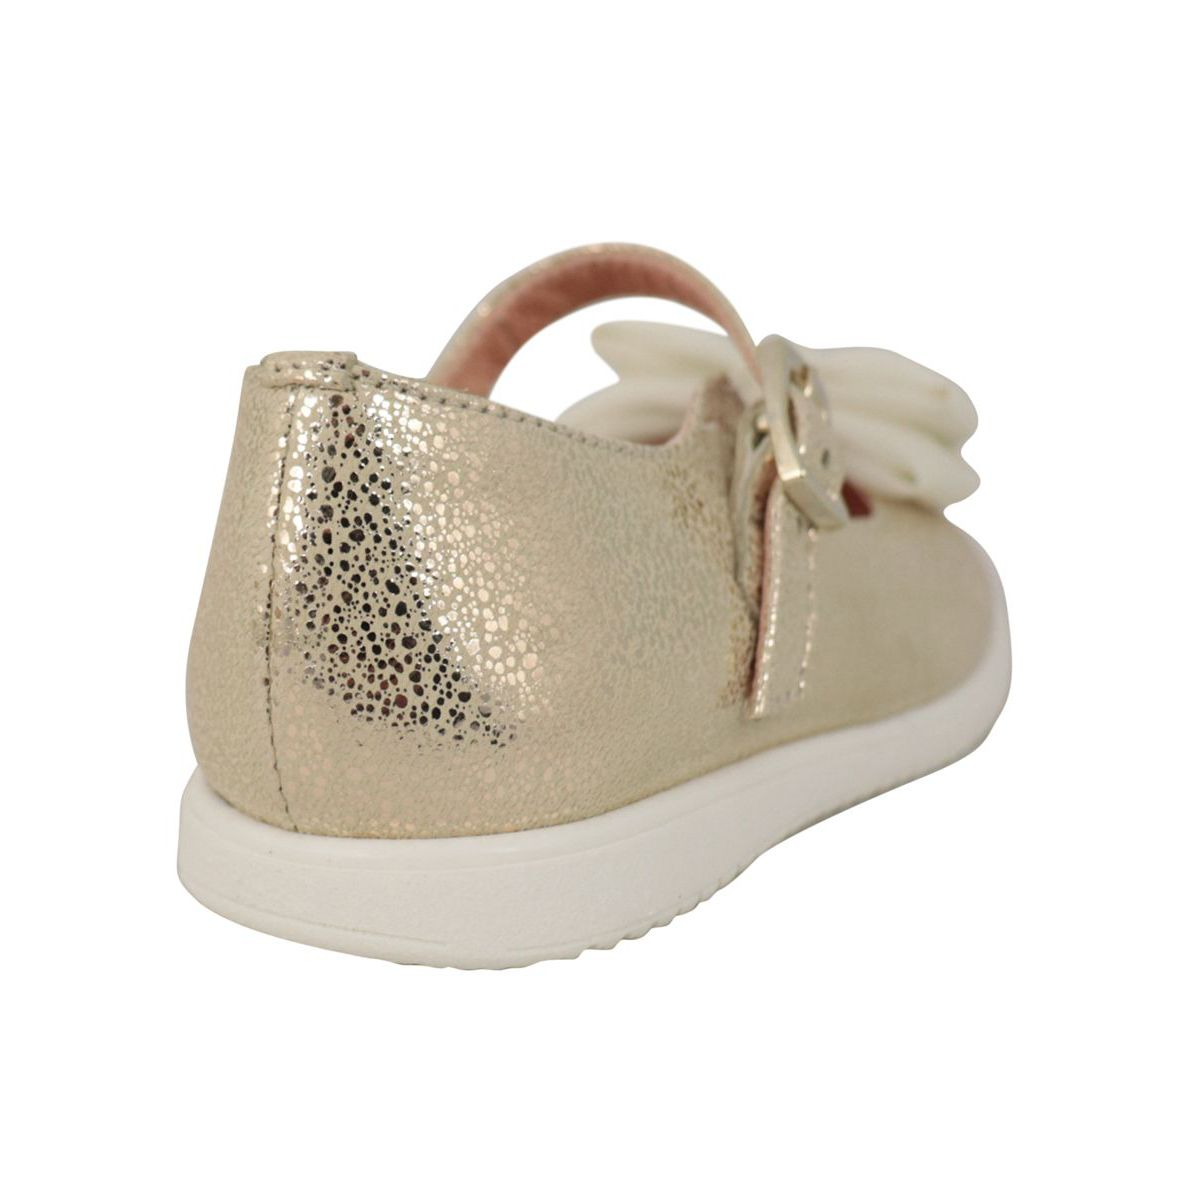 Lurex leather ballerina with front bow Gold Clarys